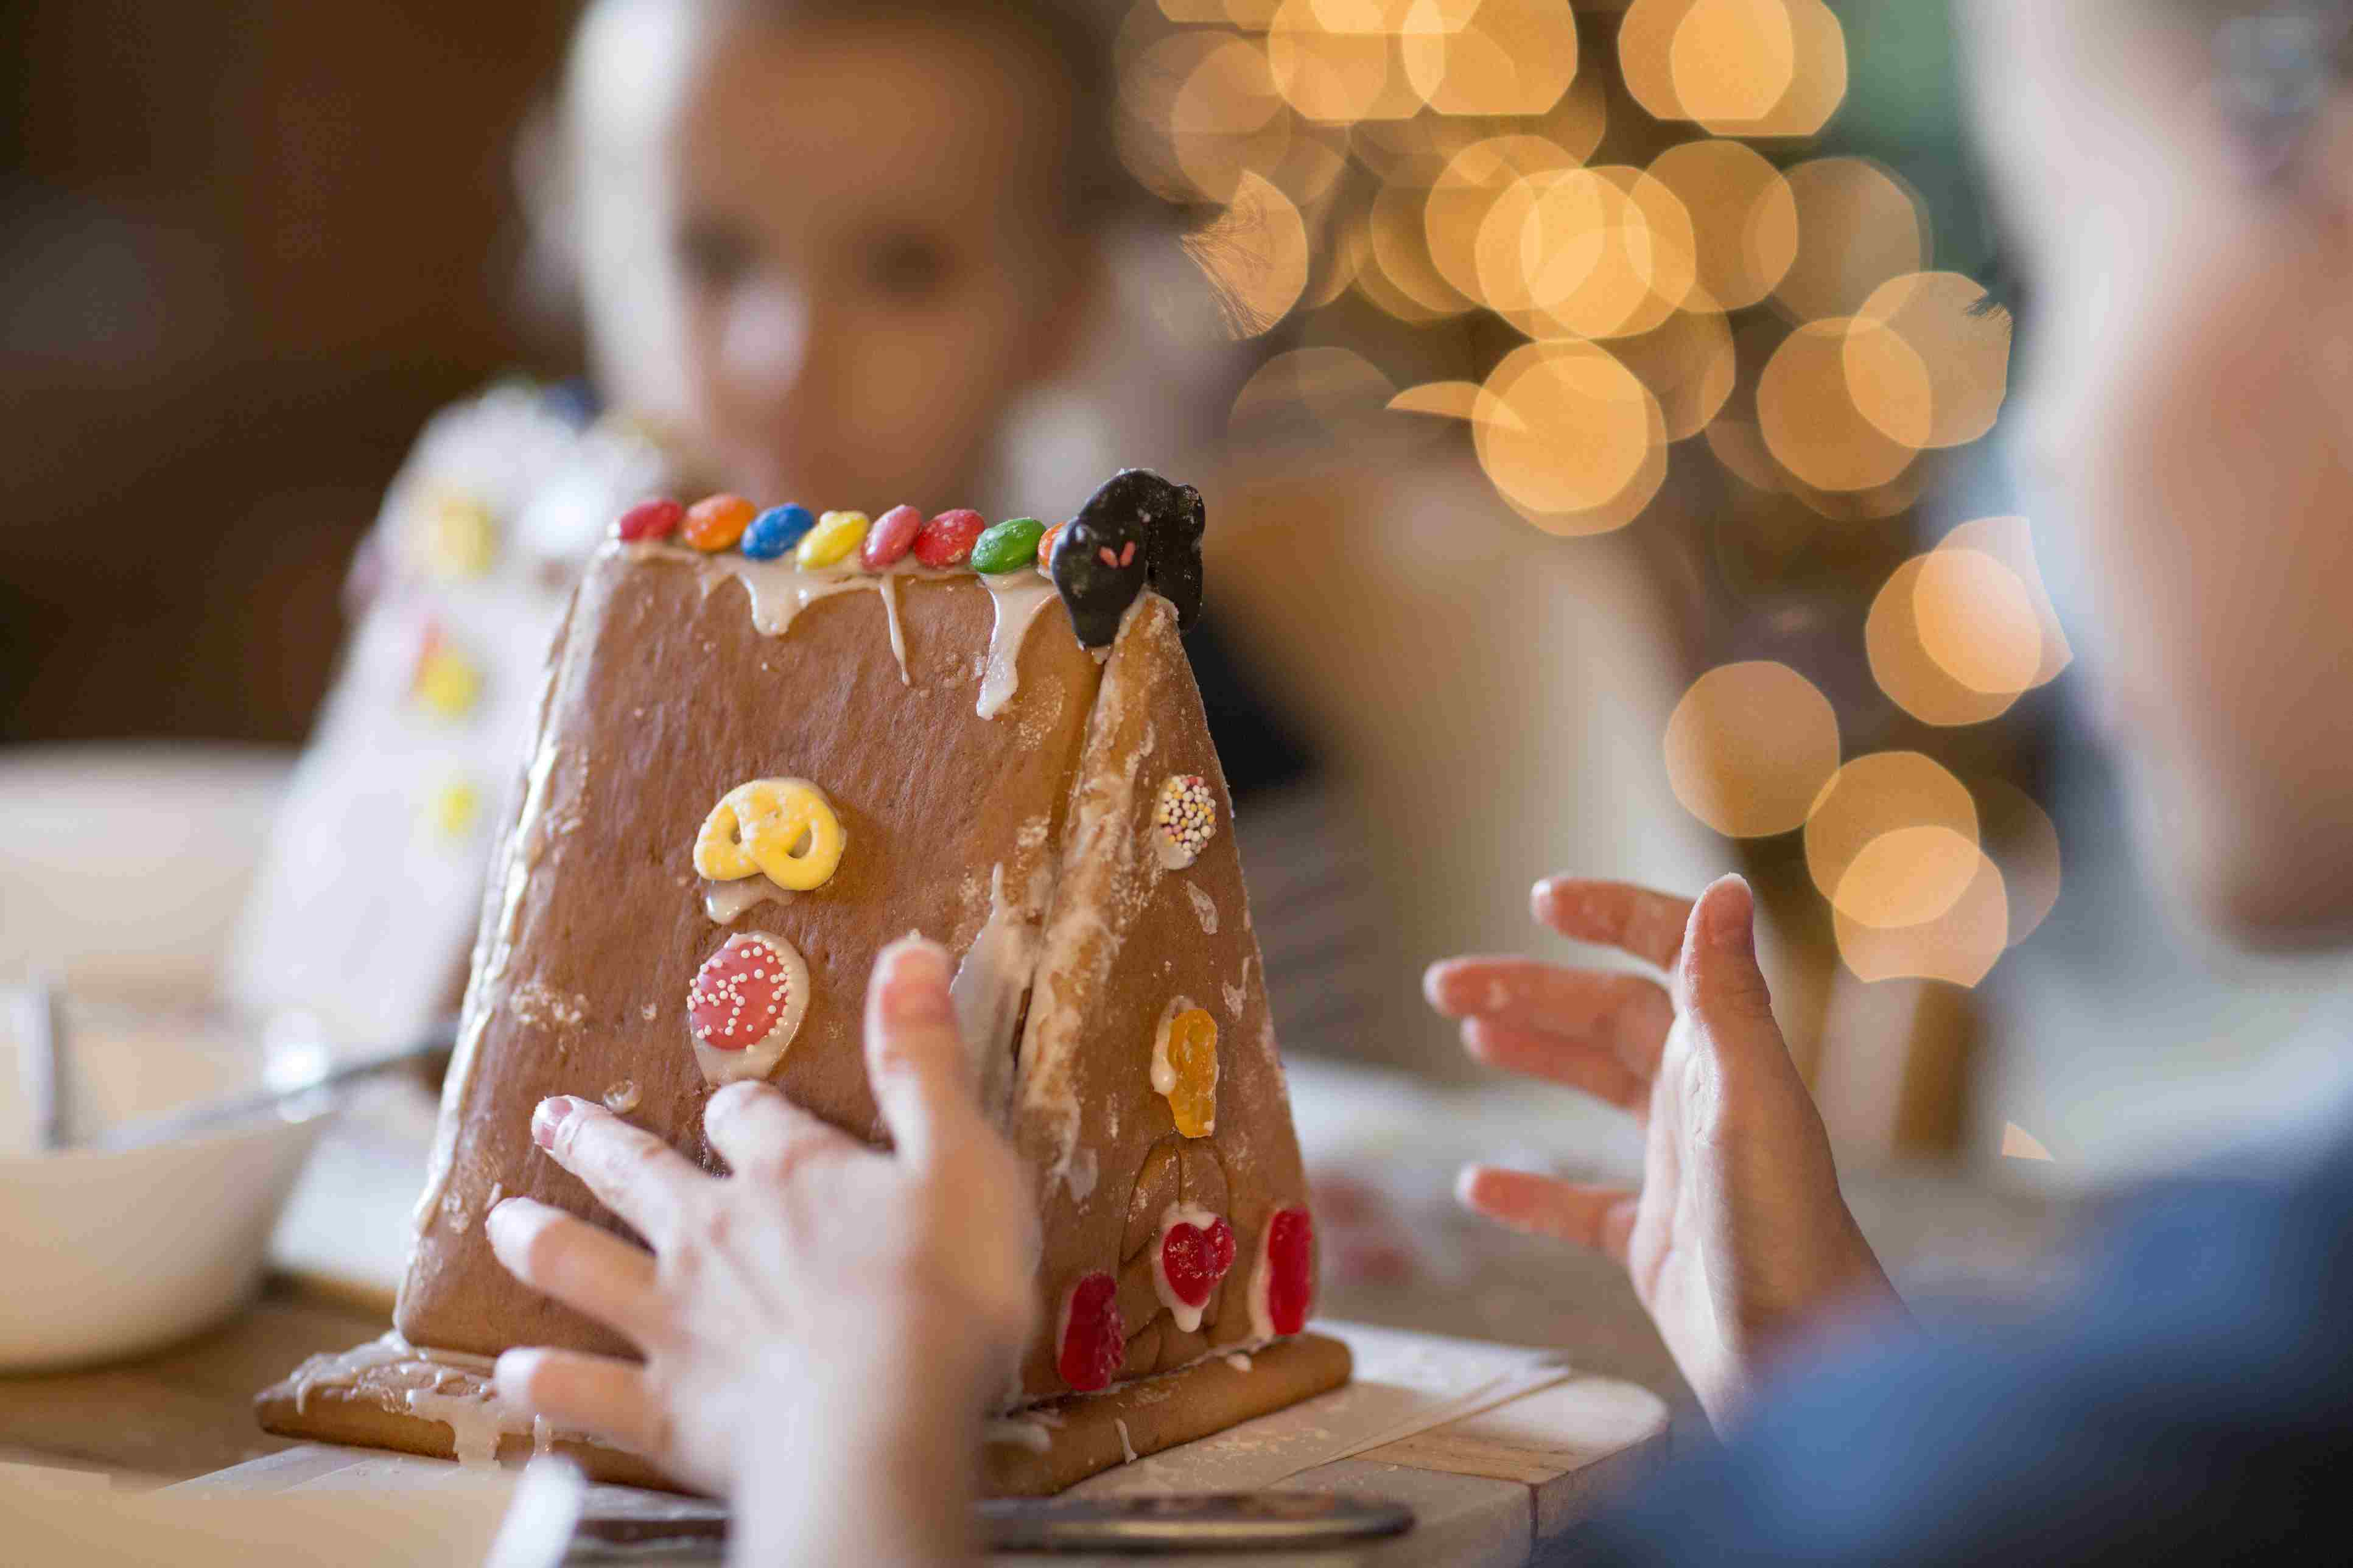 Children decorating gingerbread house